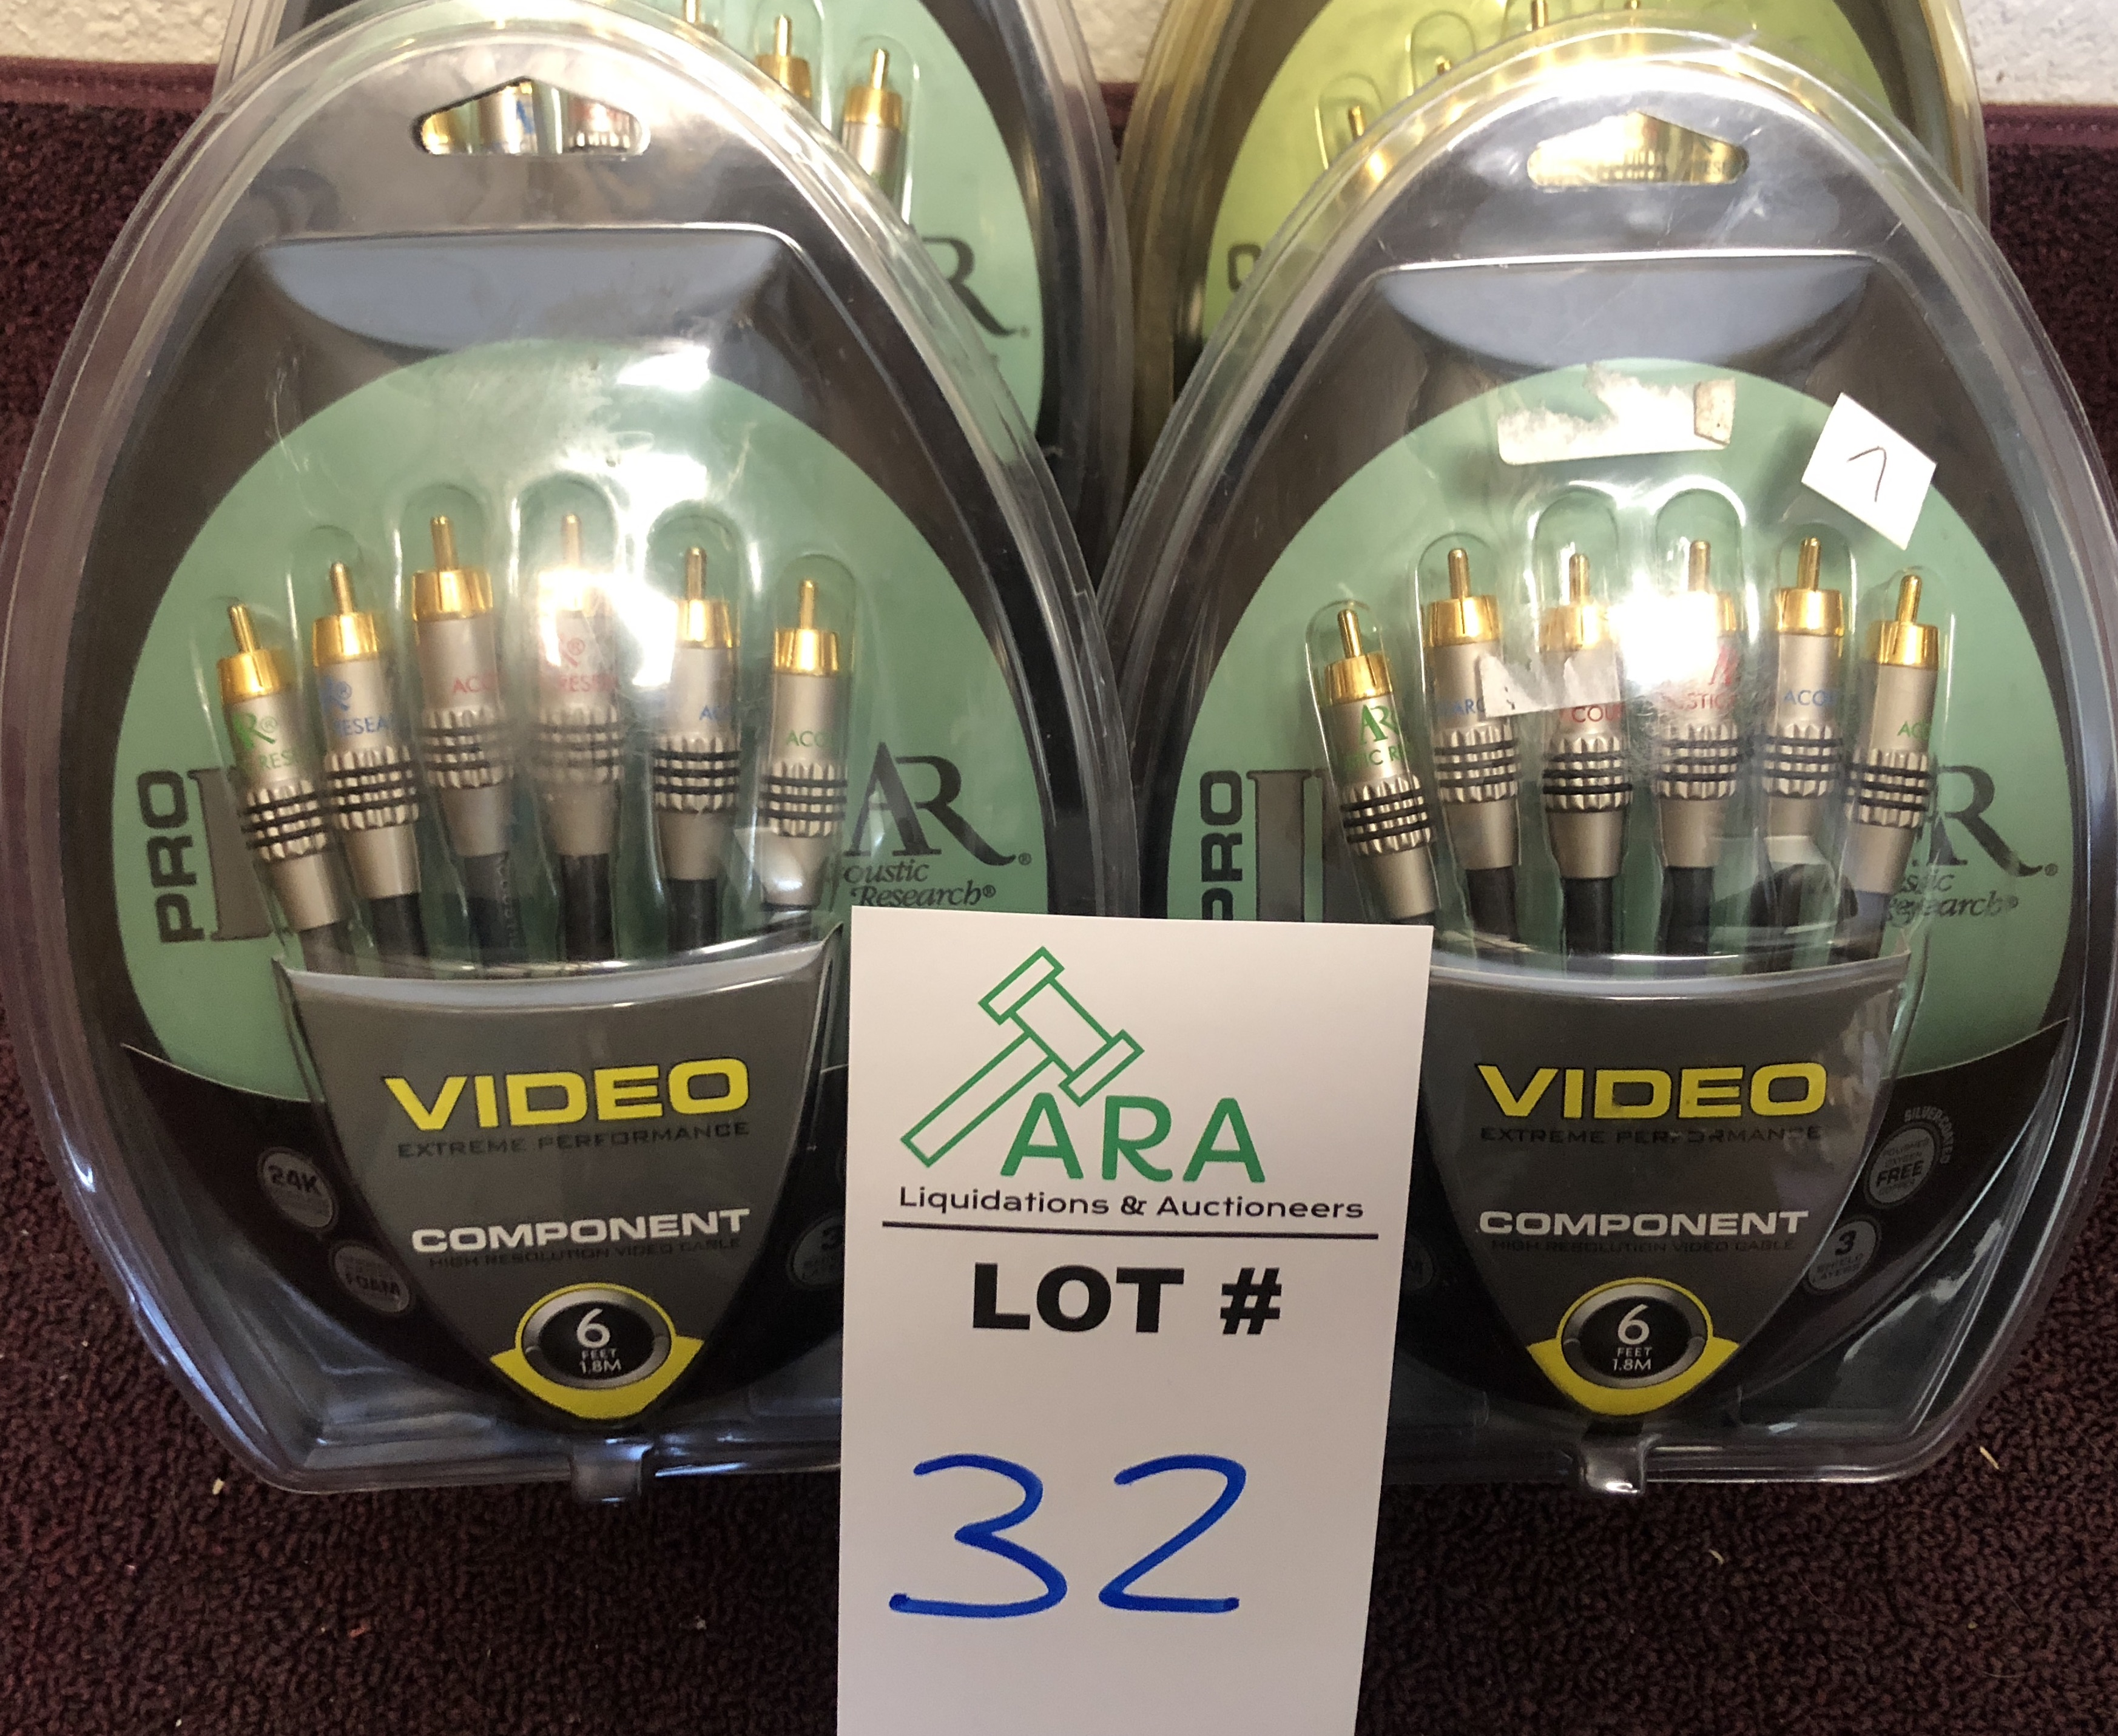 Lot 32 - 4 X VIDEO COMPONENT WIRE PRO WIRE SETS